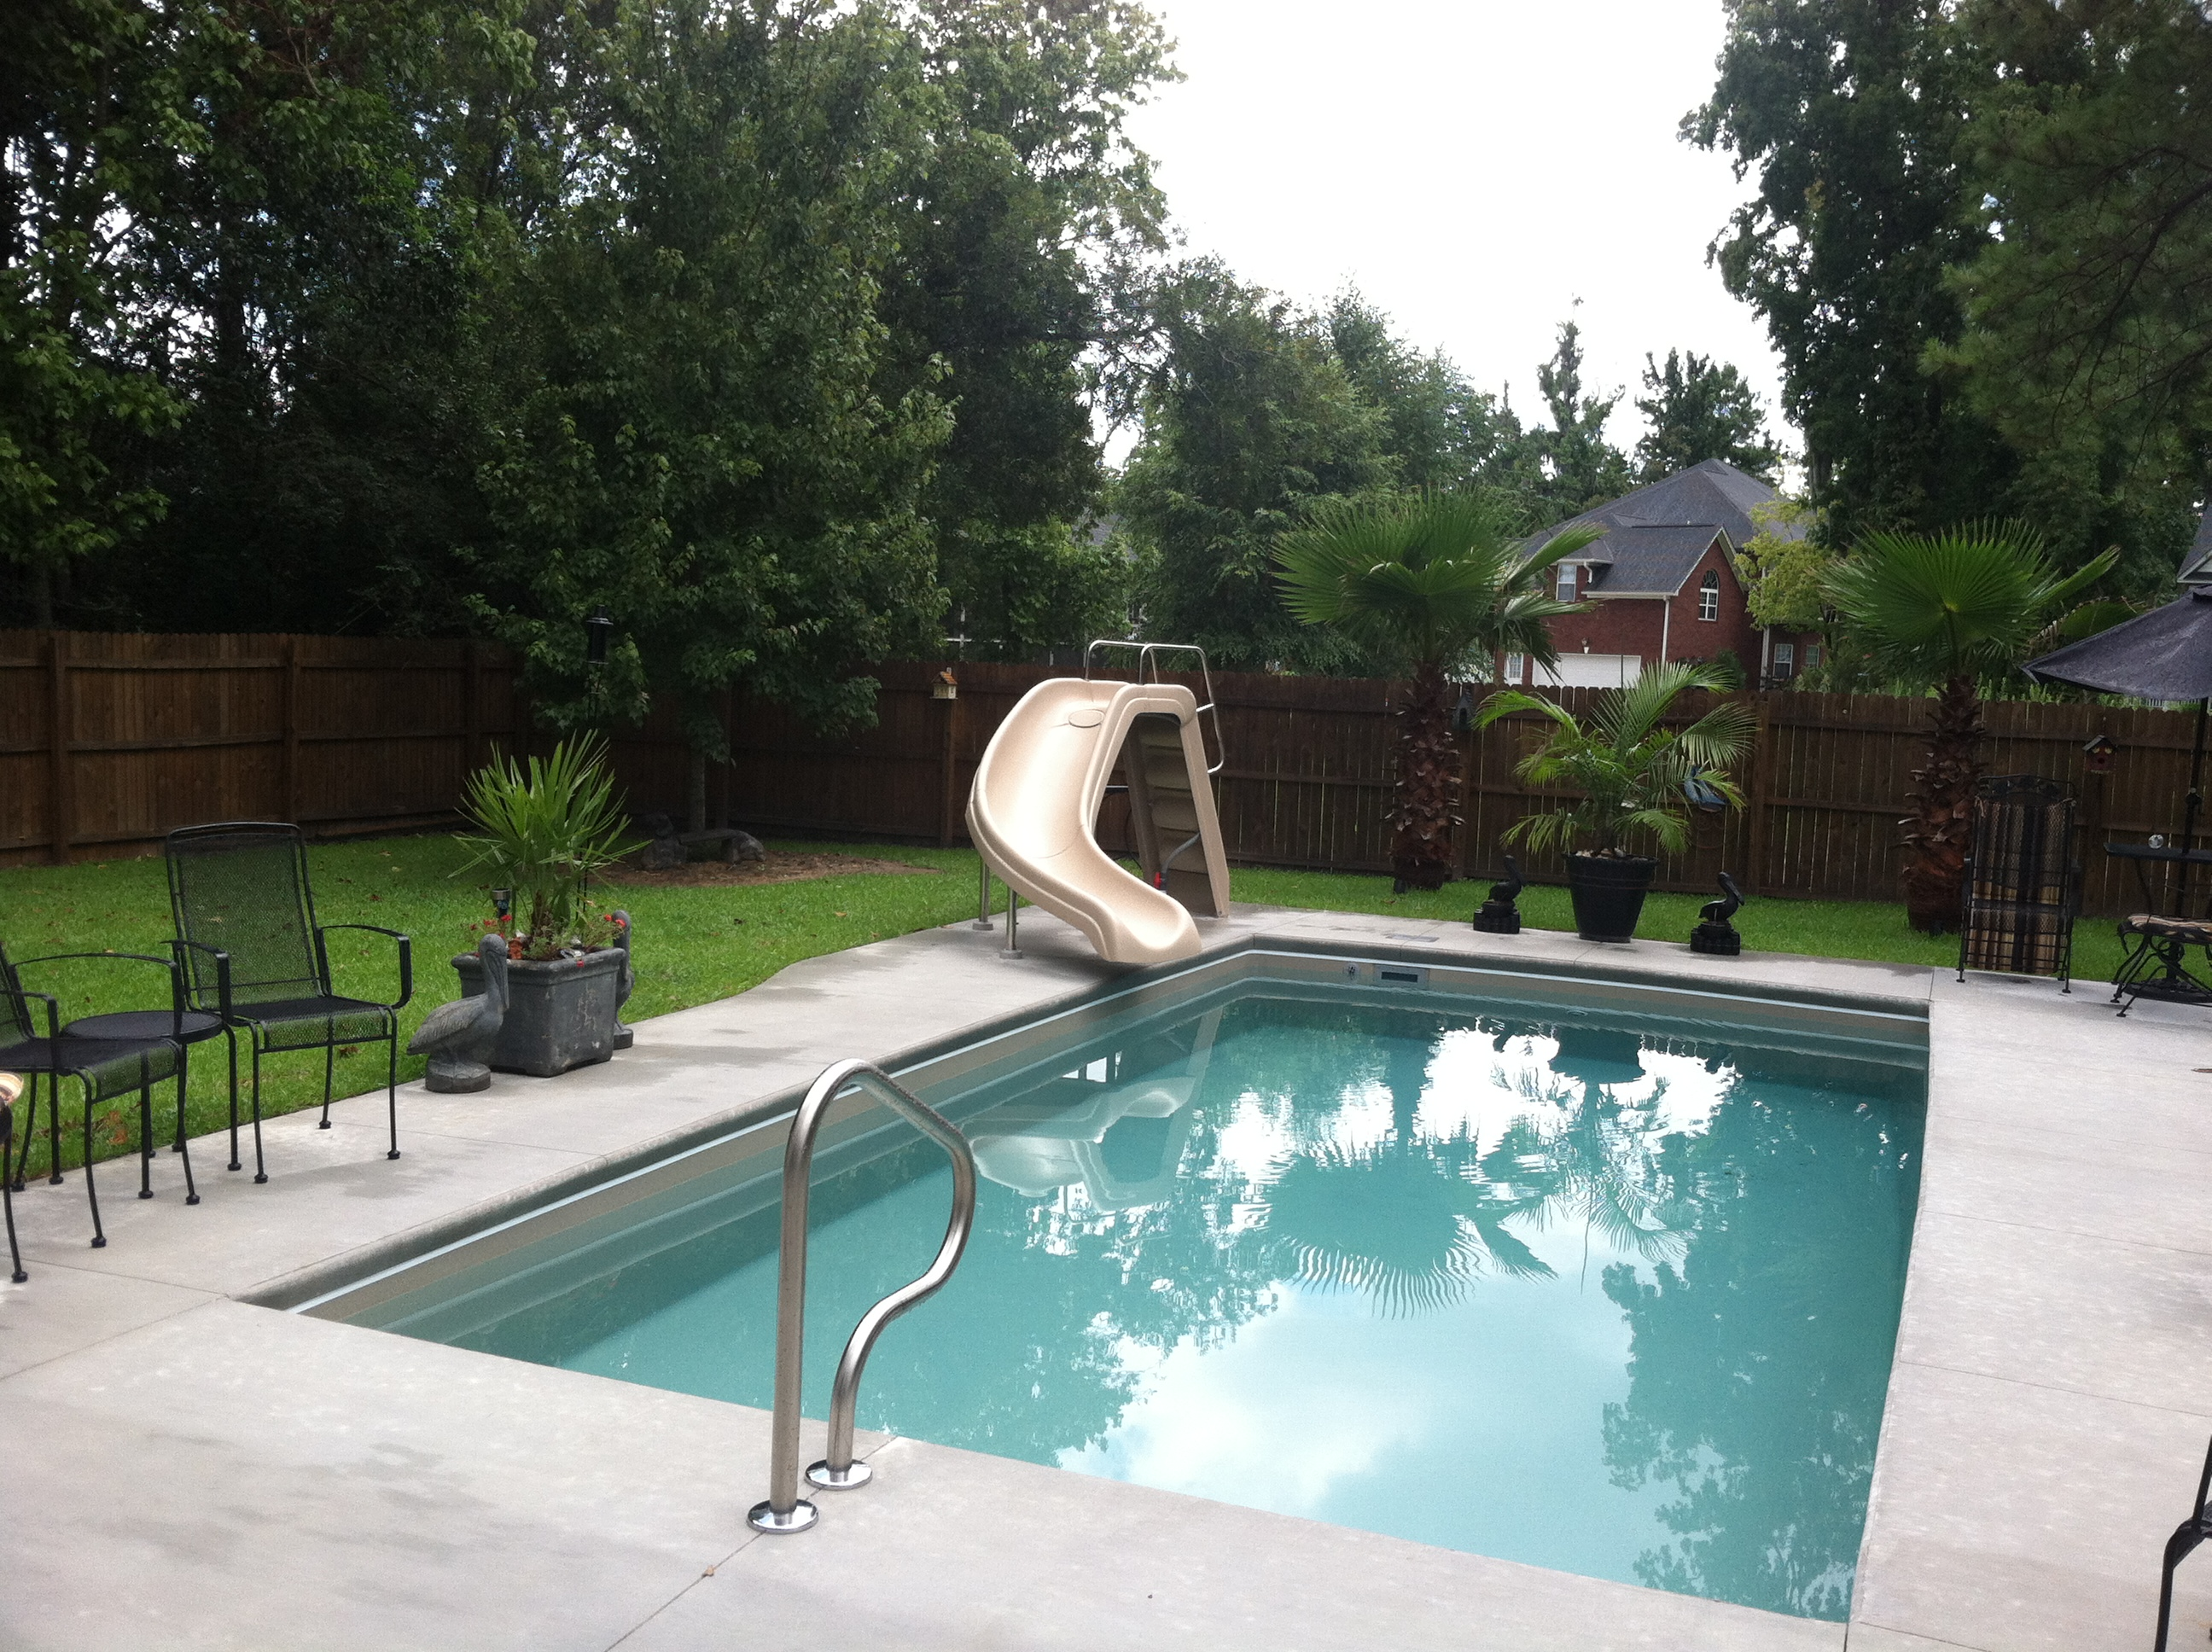 Swimming pool design charleston swimming pool company for Pool design company elwira kowalska